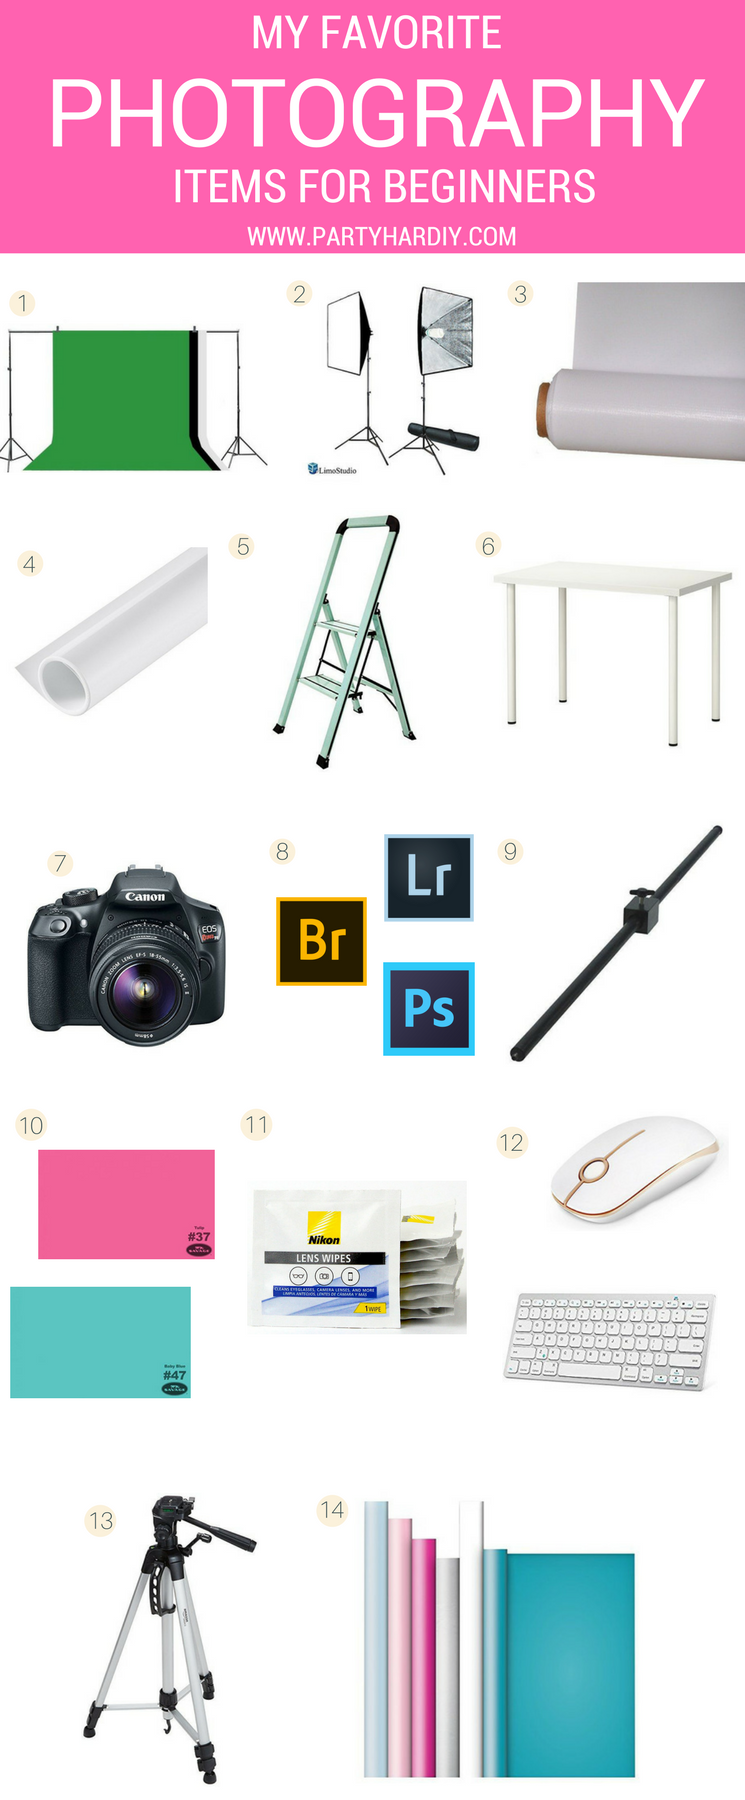 Looking to improve your photography? I've got my essential items for beginner photographers that are super affordable! #photographytips #photography101 #betterphotography